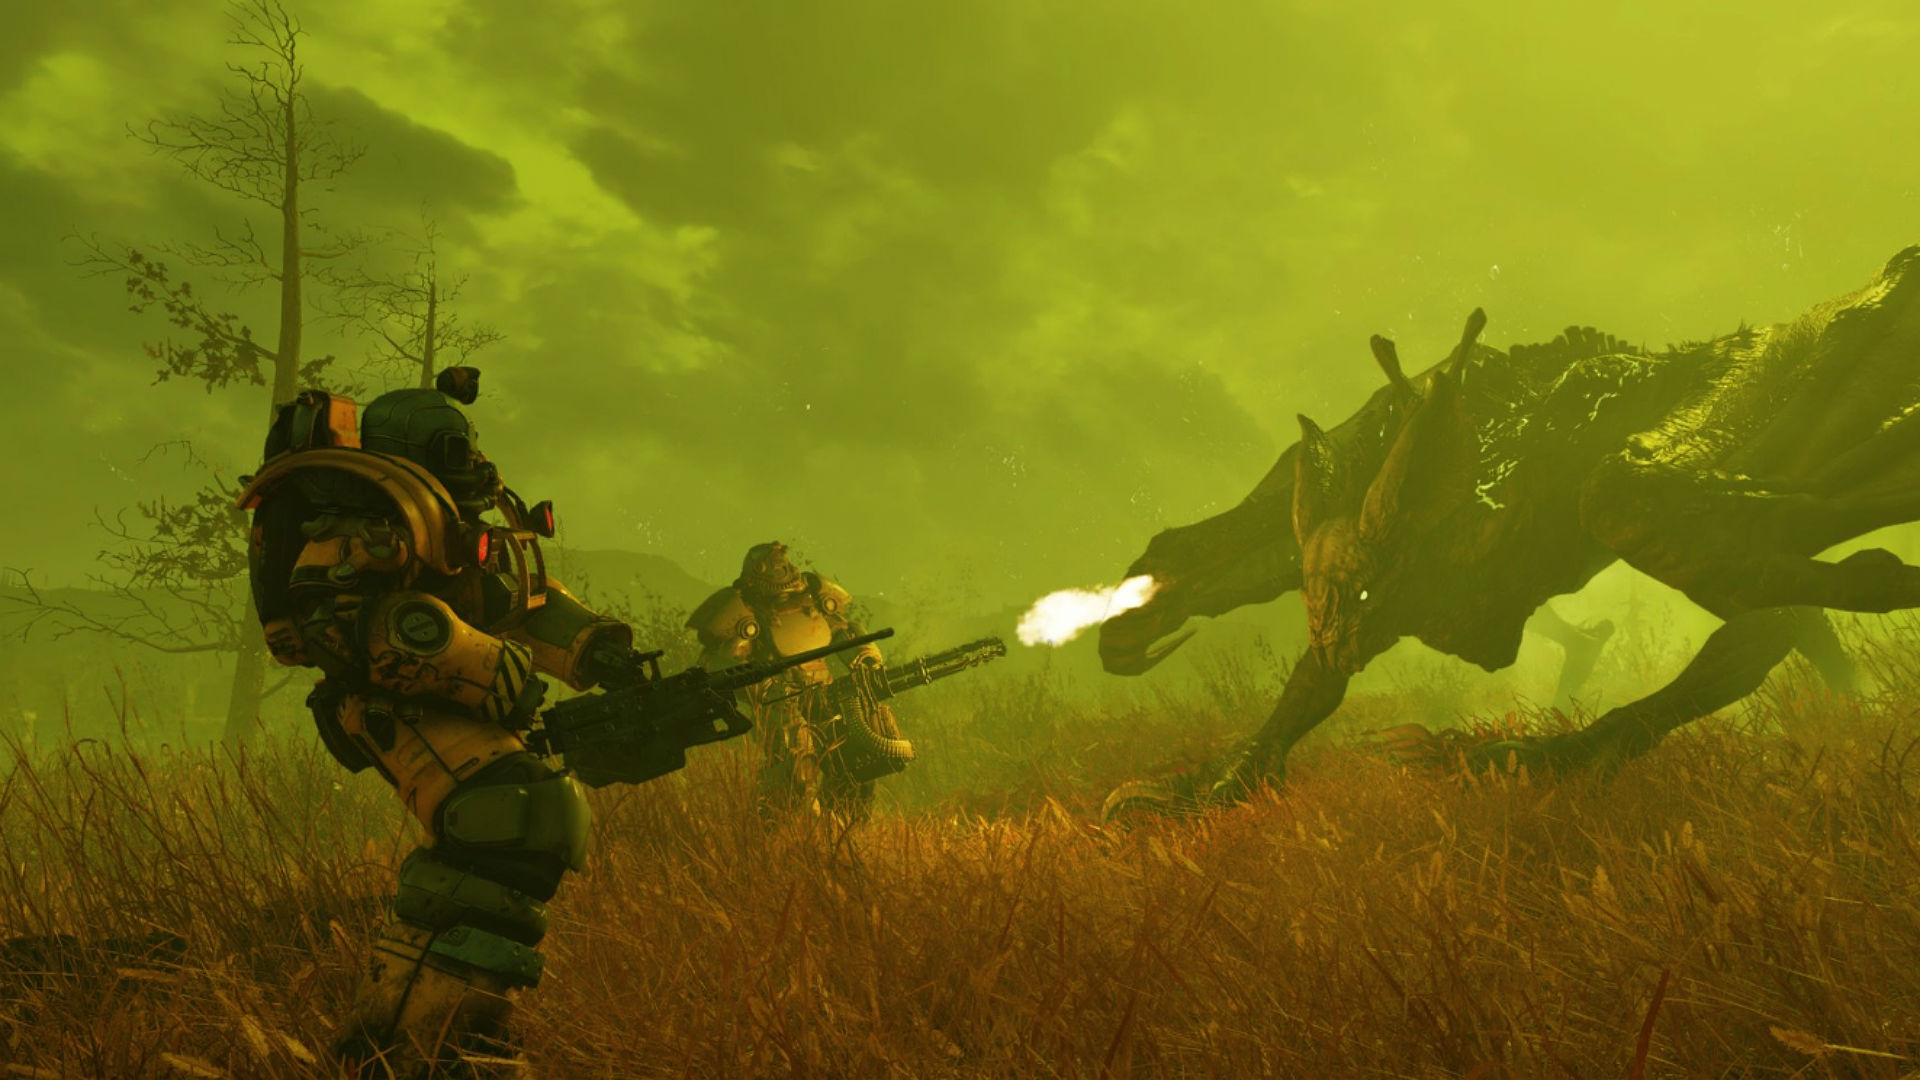 Fallout 76 Rare Weapons Where To Find The Alien Blaster Black Powder Guns And More PCGamesN